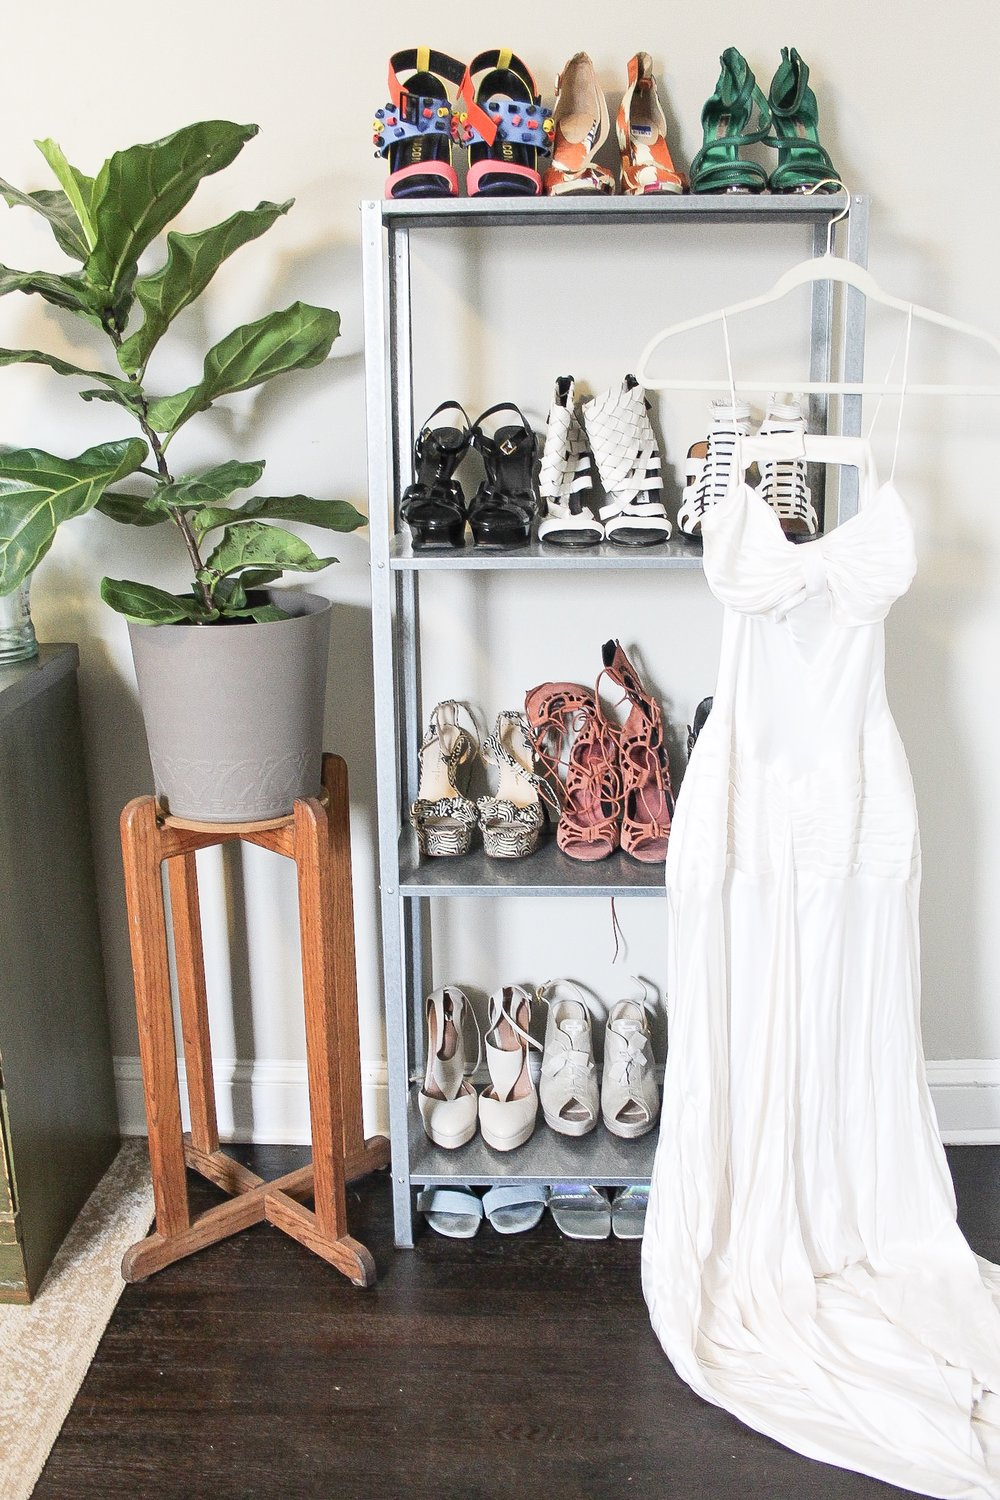 Thrifted : wedding dress, YES people this will be my actual wedding dress when the day comes and I scored it for $6 from the thrift. A few pair of shoes pictured here are thrifted and the plant stand is from an estate sale.